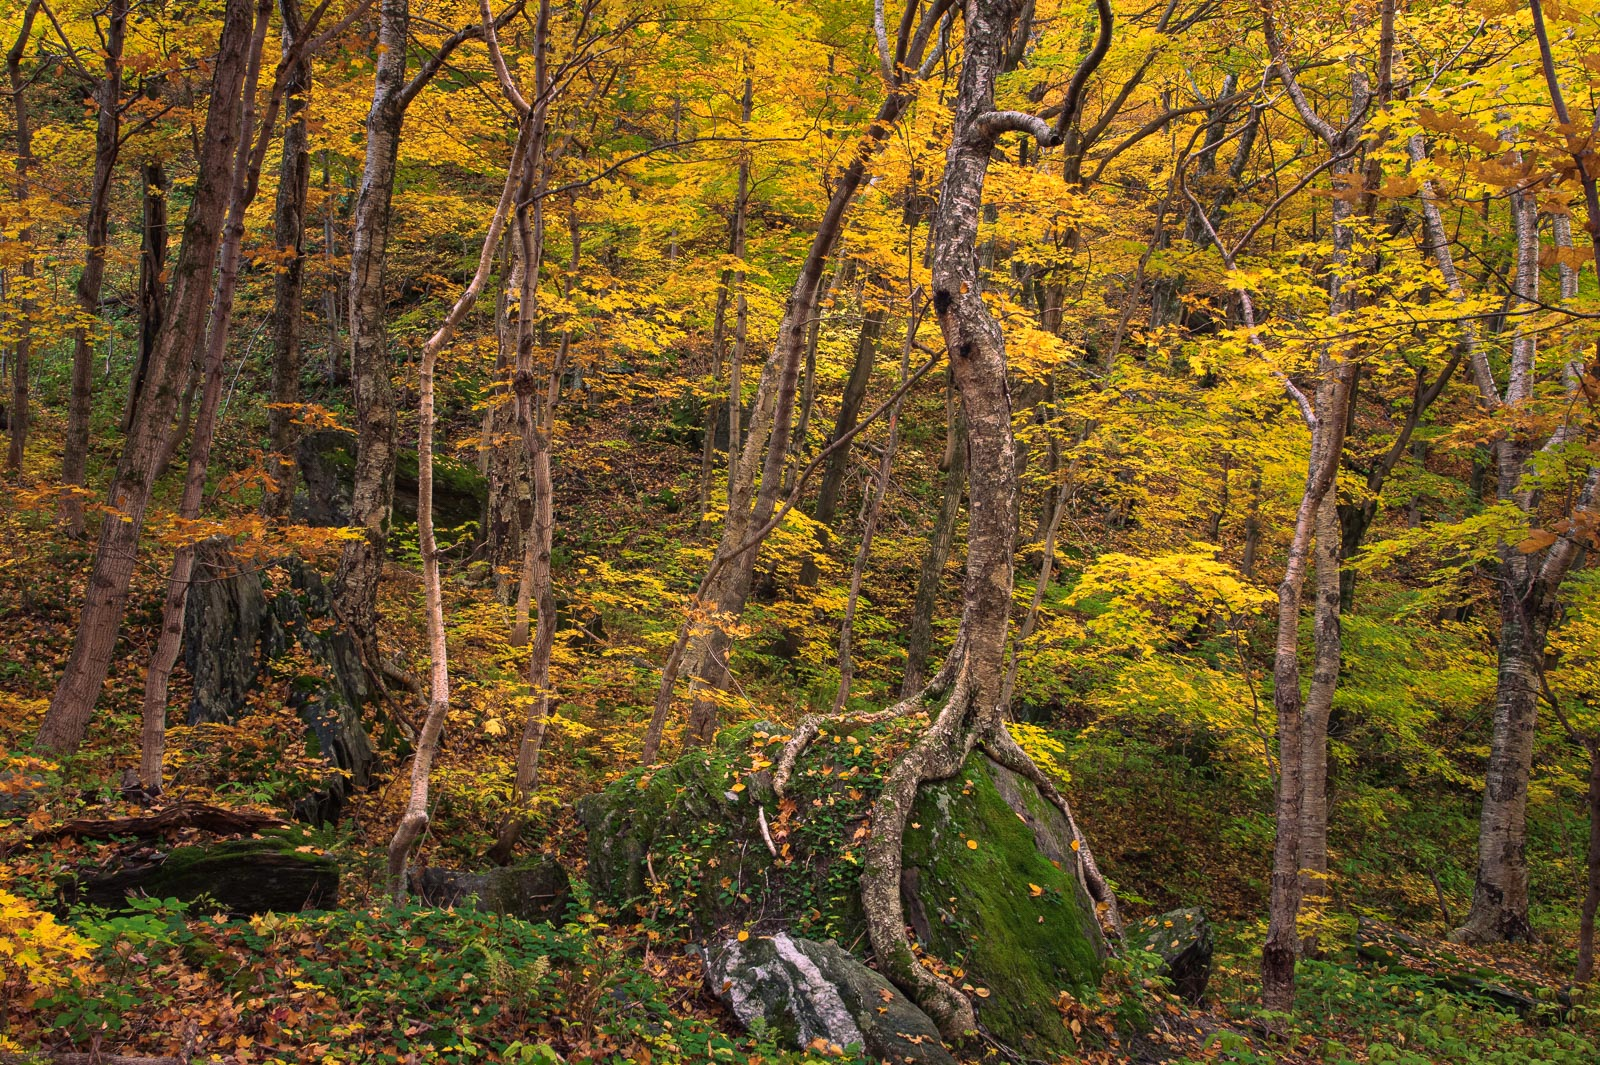 Autumn forest in Smugglers Notch, Mount Mansfield, Vermont.